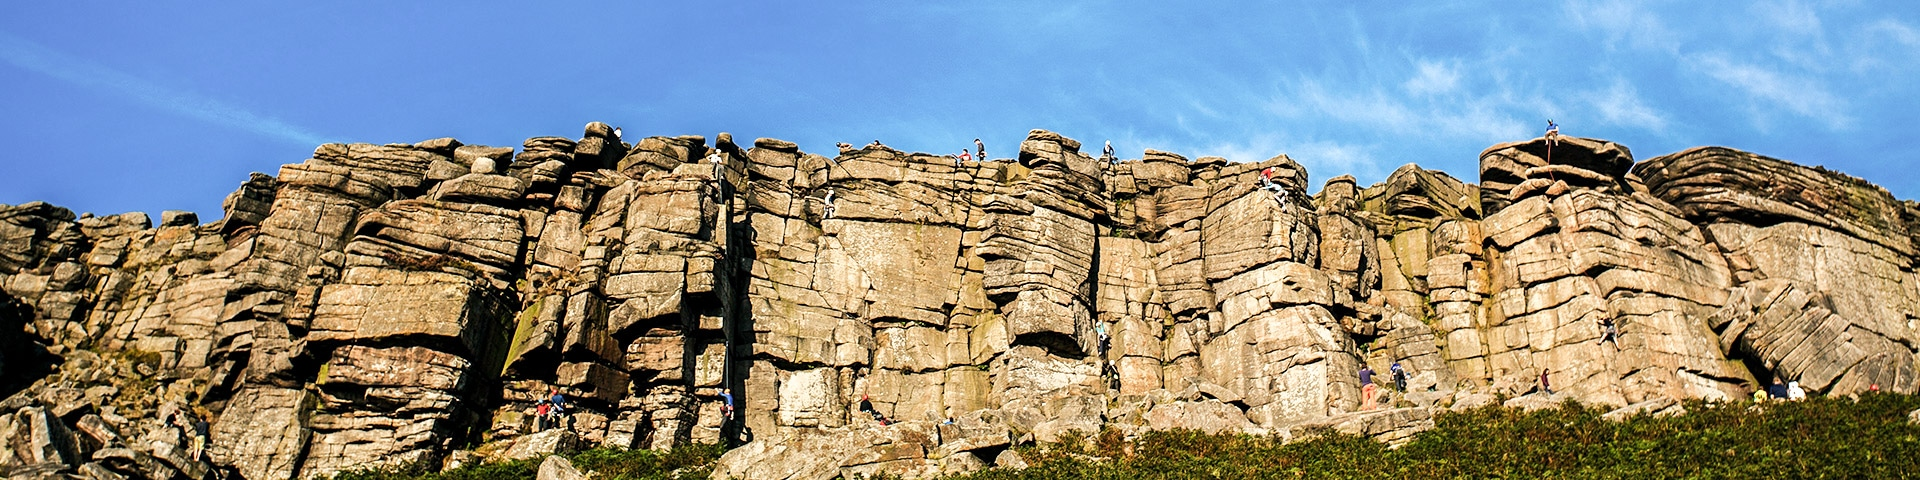 Panorama from the Stanage Edge from Hathersage hike in Peak District, England